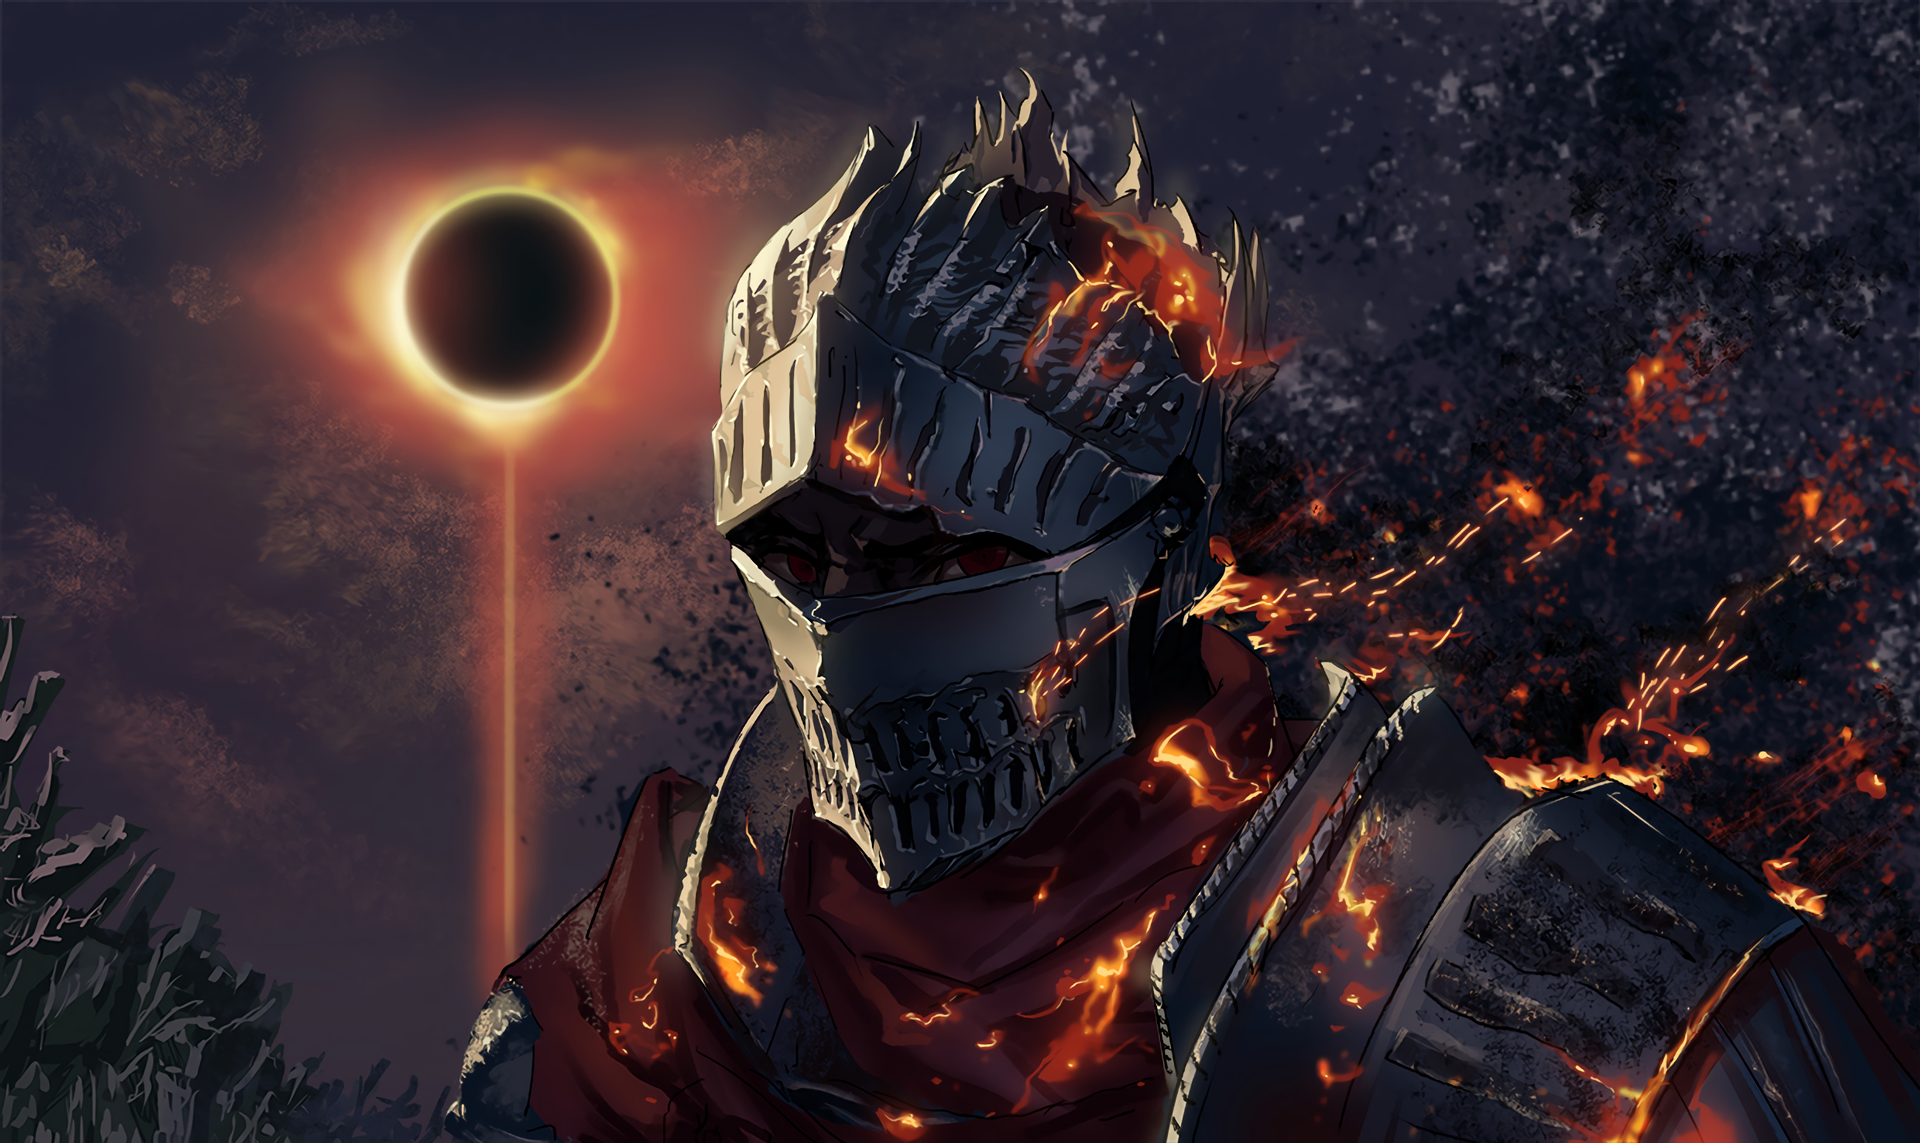 3 soul of cinder hd wallpapers background images wallpaper abyss hd wallpaper background image id697790 1920x1143 video game dark souls iii voltagebd Images